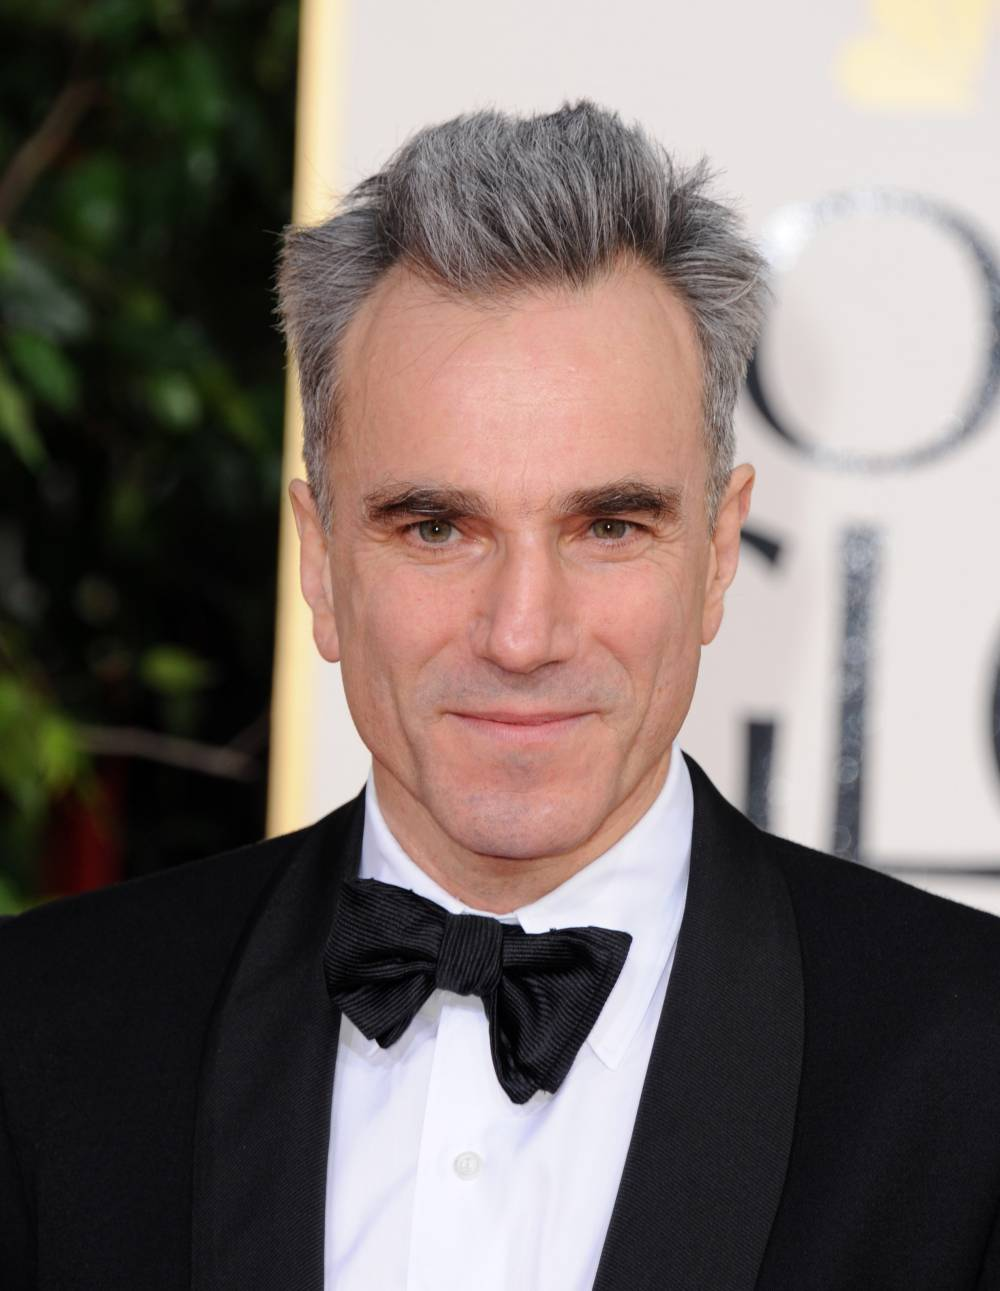 BREAKING NEWS: Daniel Day-Lewis Retires From Acting